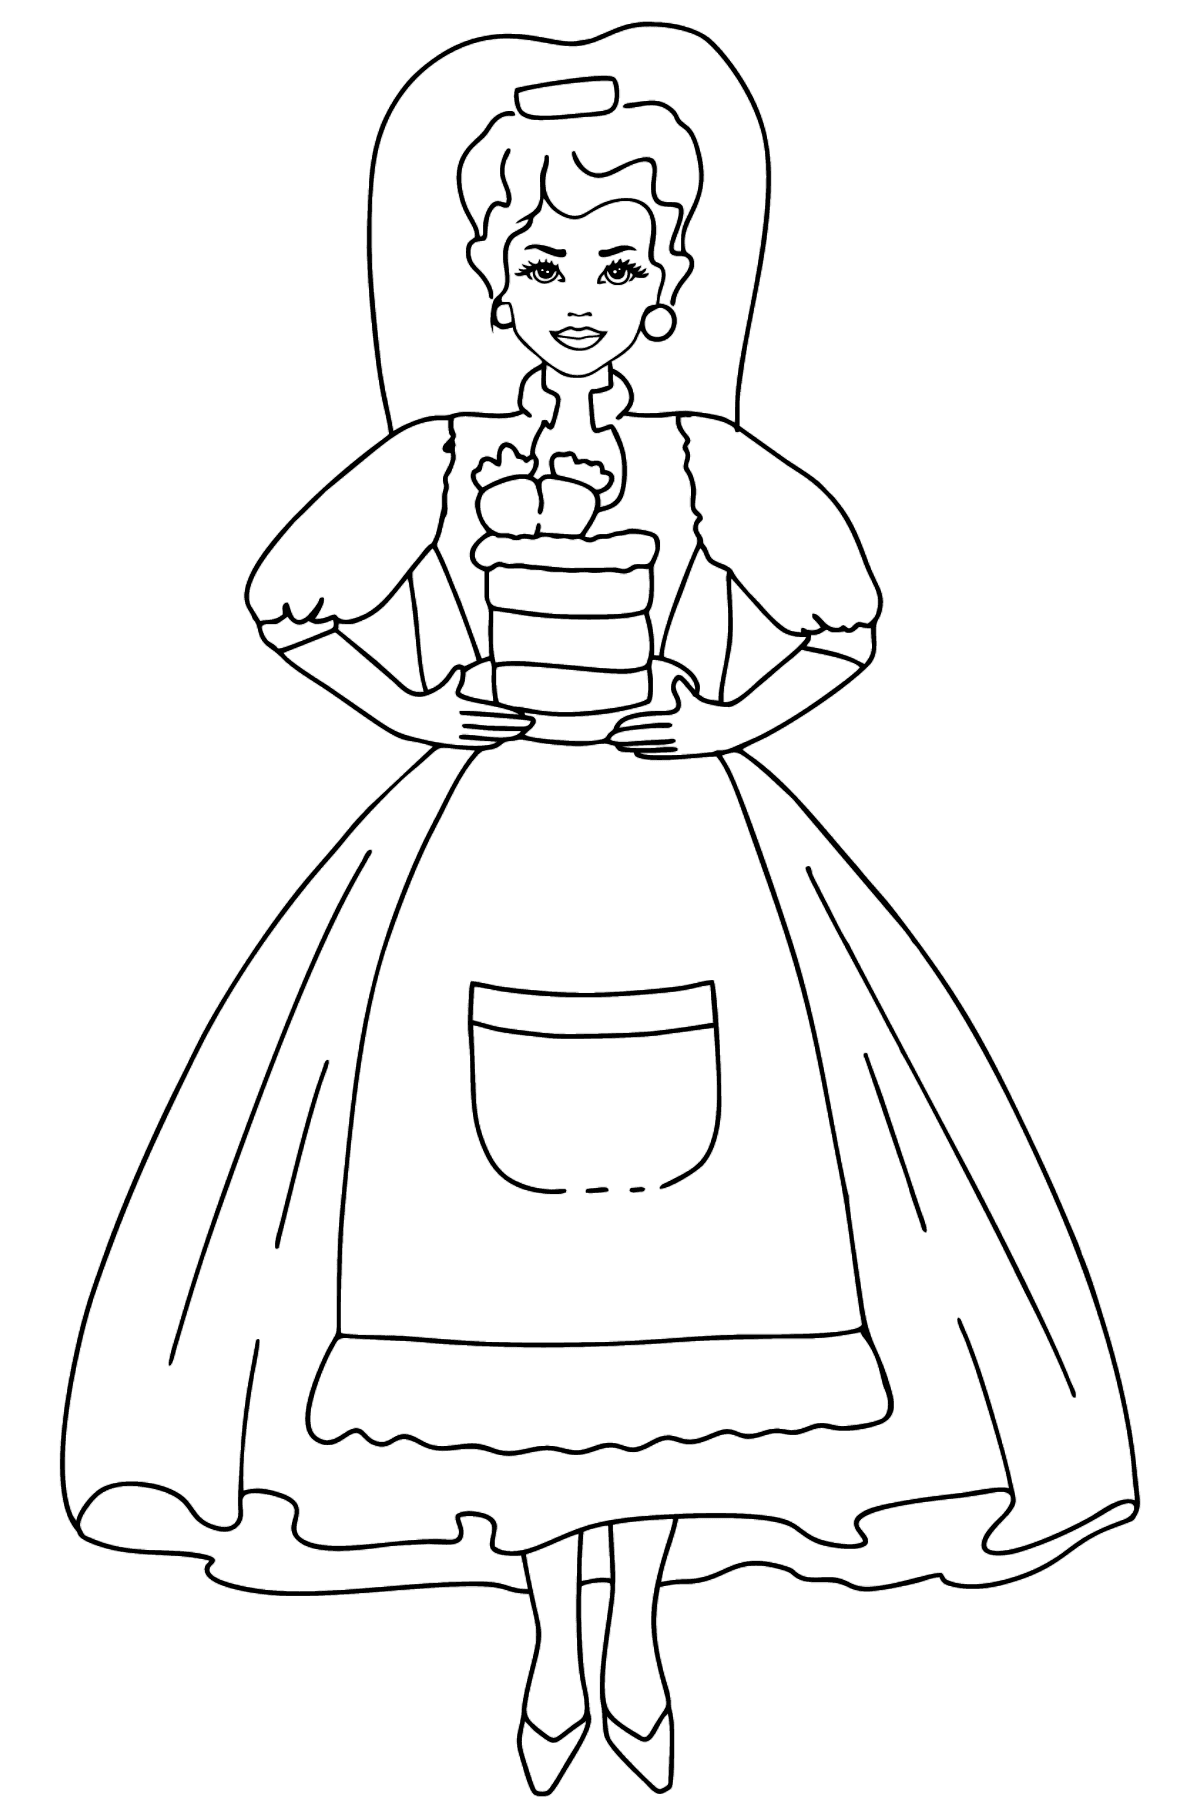 Barbie Doll and Cake coloring page - Coloring Pages for Kids